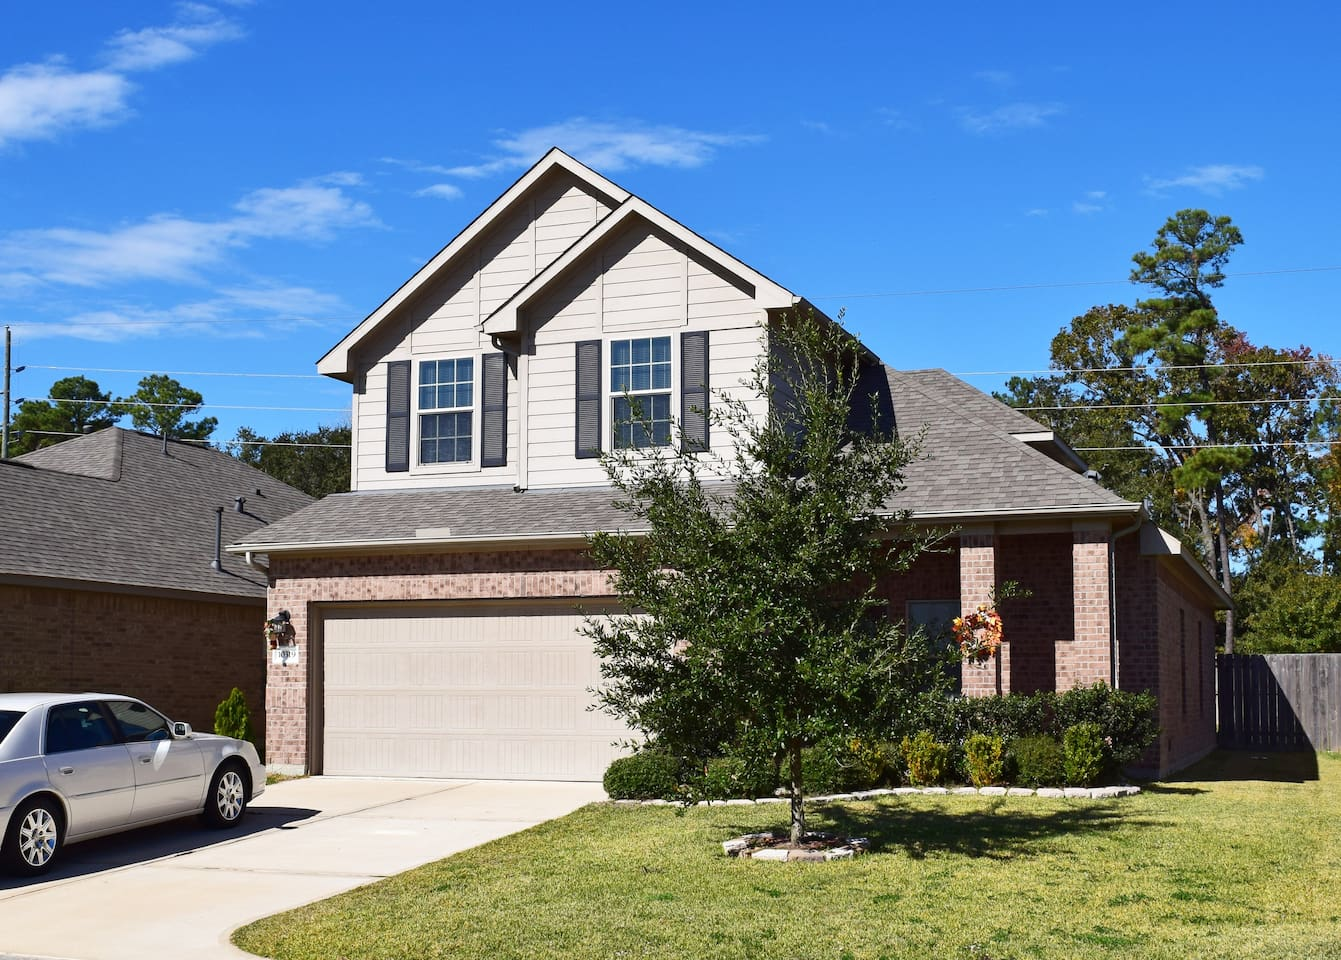 My home is a two story home with plenty of space to relax and enjoy!